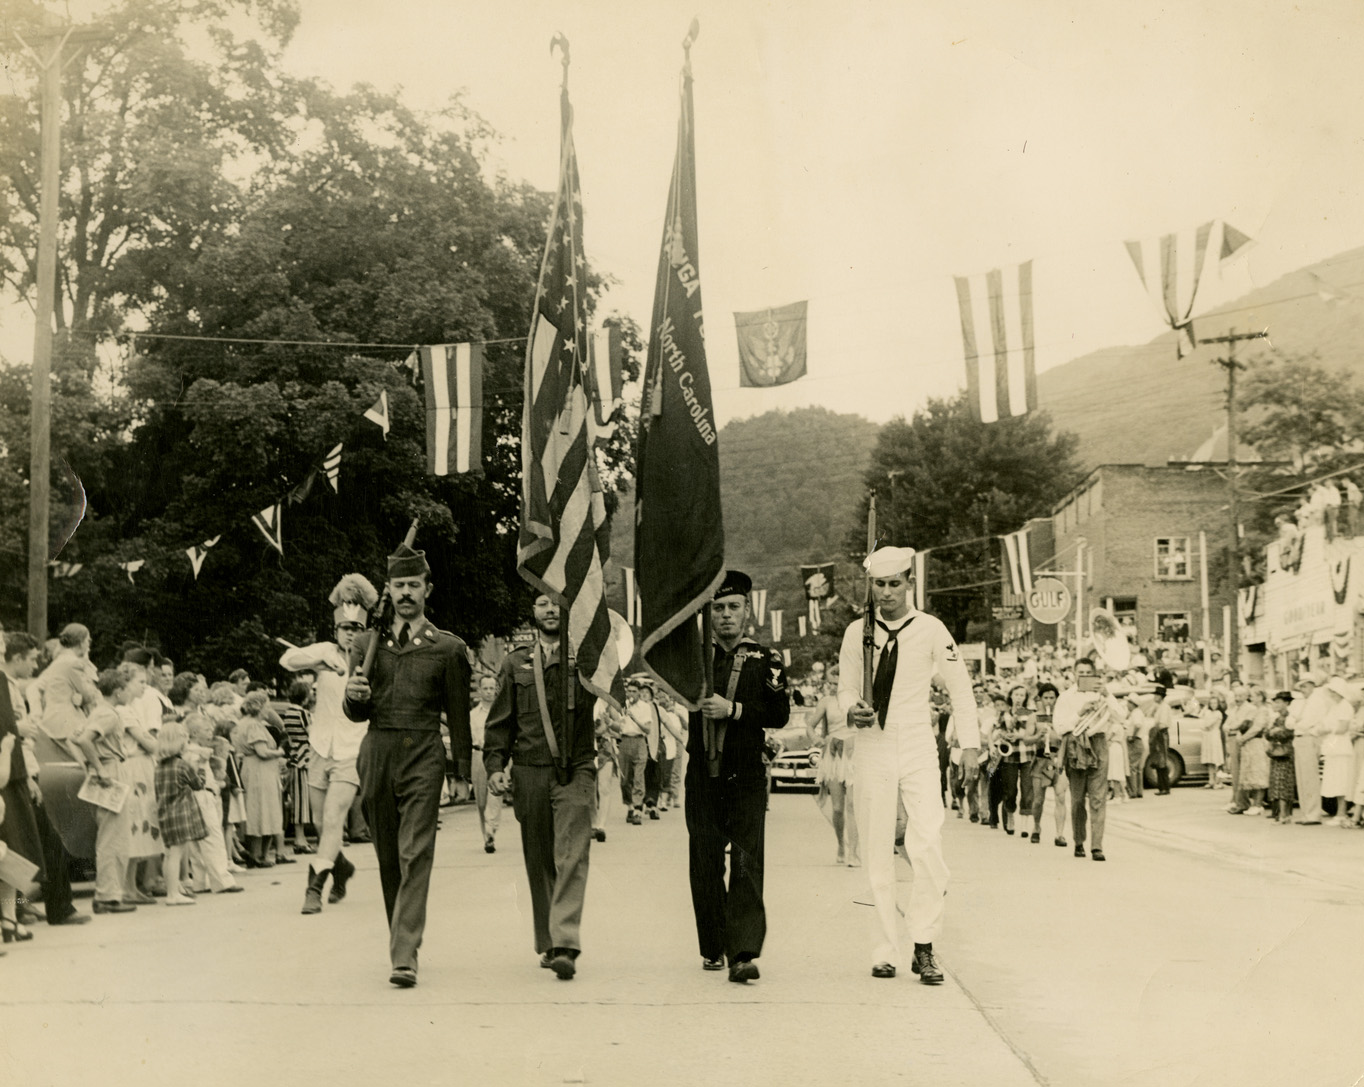 Local photographer Palmer Blair also shot this image of the 1949 Watauga County Centennial Parade color guard marching down West King Street from west to east. Von Hagaman is visible as the second man from the right. The 1875 Watauga County Courthouse with its unusual corner entrance on the first floor is visible at right in the distance. Image courtesy of the Digital Watauga Project, Von and Mickey Hagaman Collection (Von-Hag-1-030).